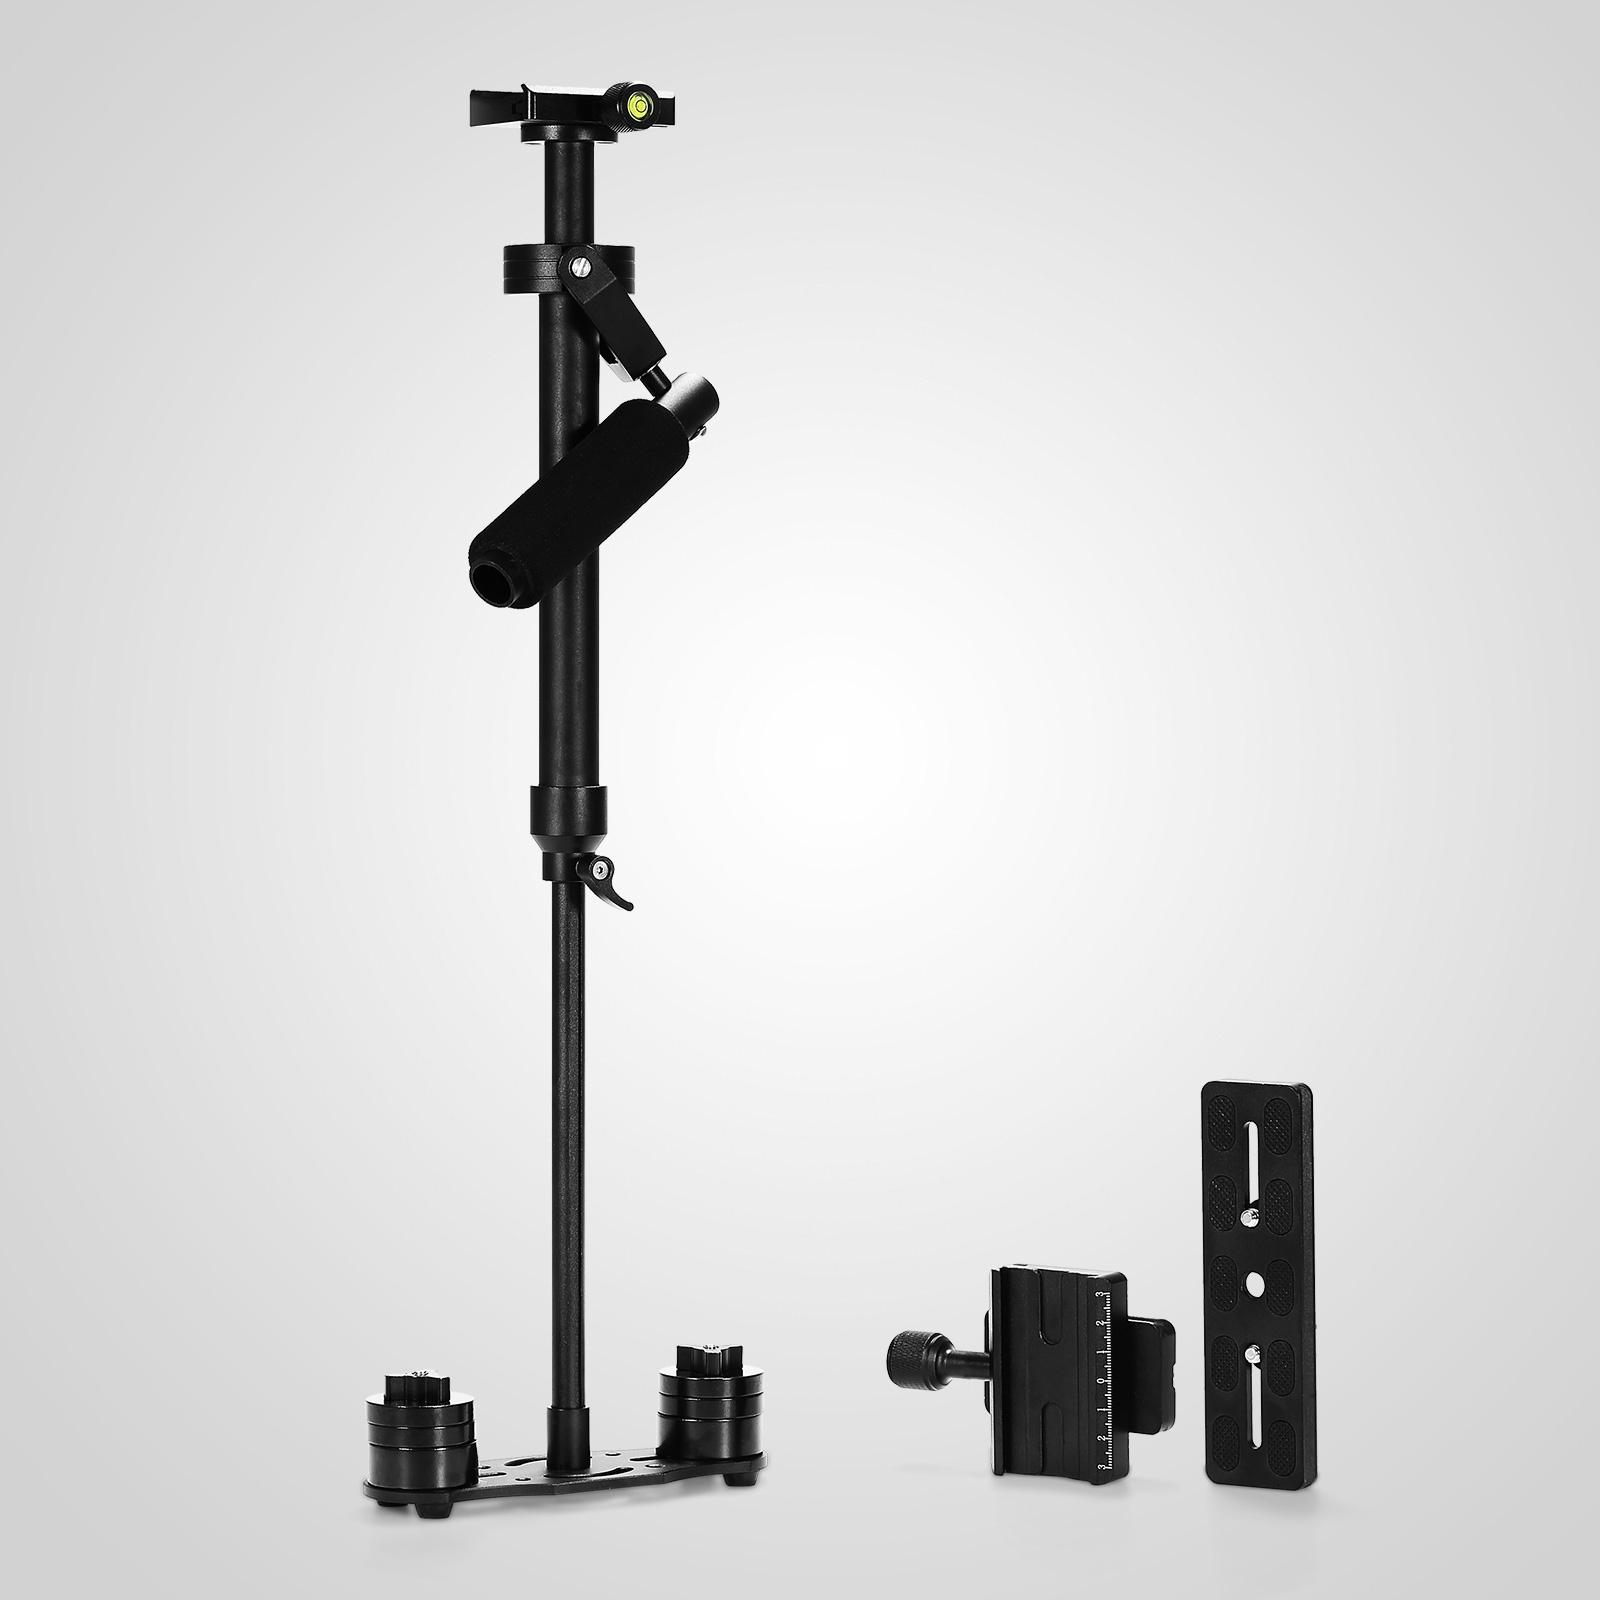 S60T-S60N-Handheld-Steady-Stabilizer-360-For-DSLR-Canon-Camera thumbnail 19